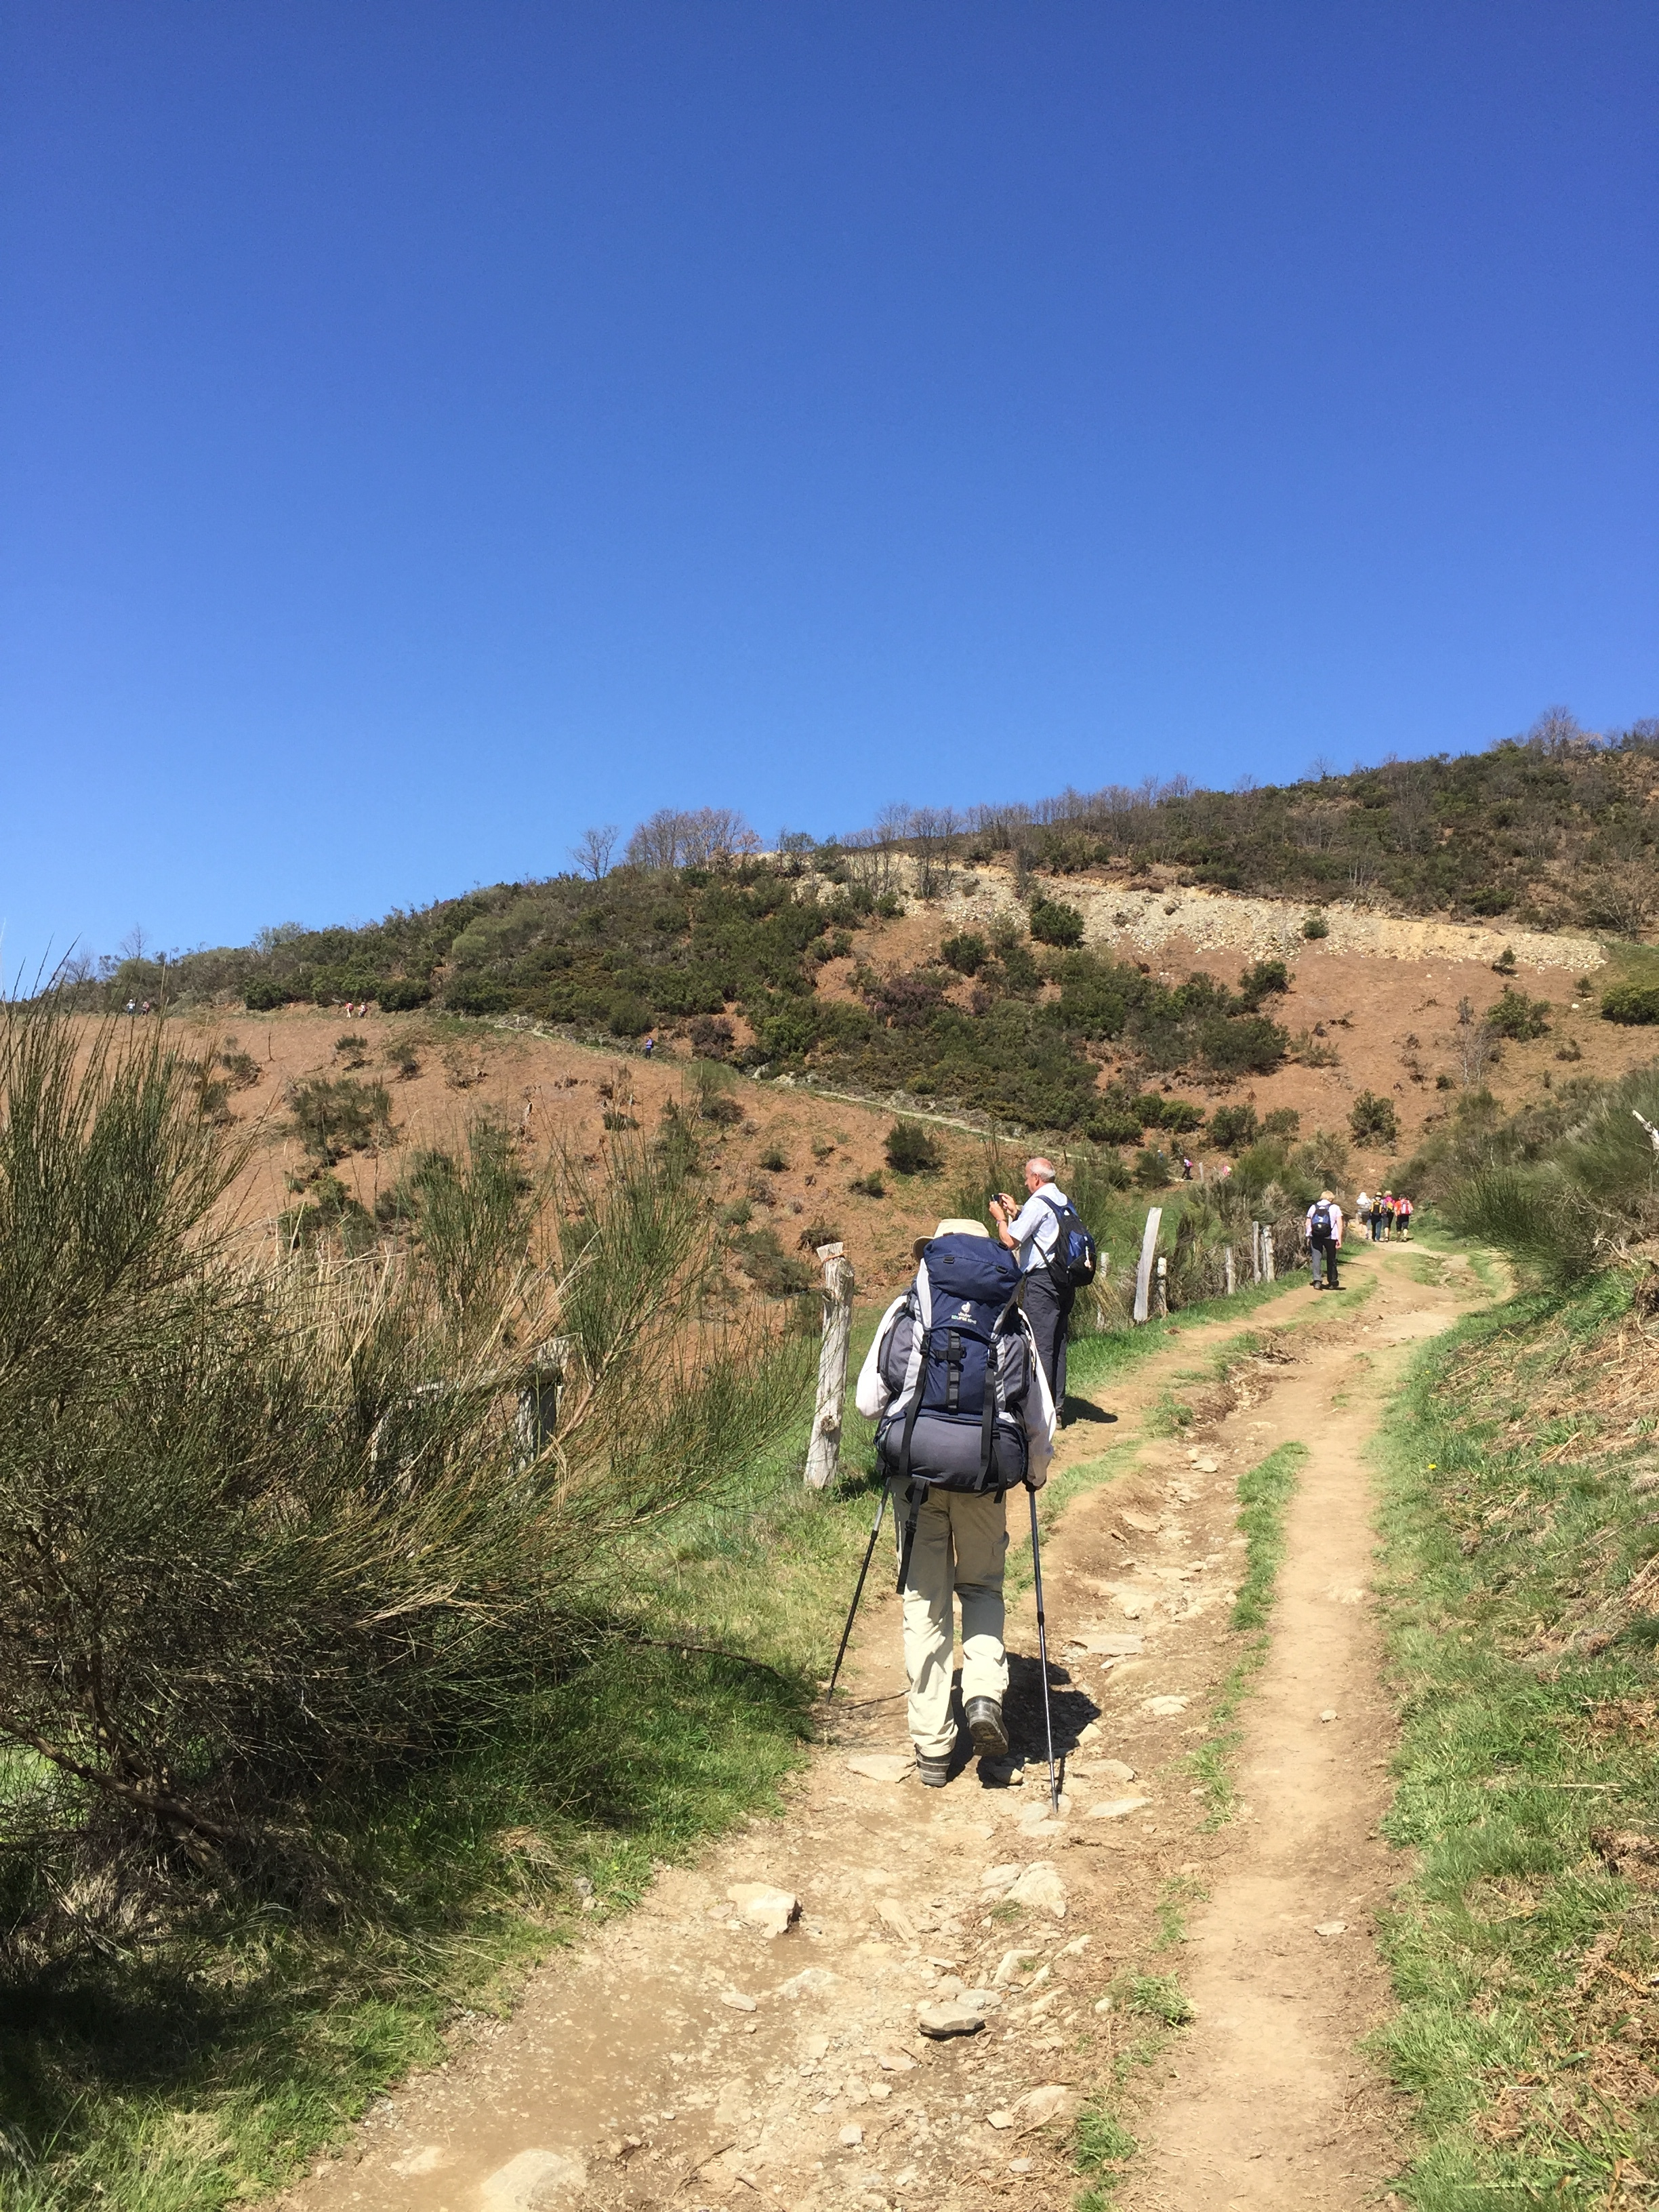 In the spring, the camino is less crowded than in the summer